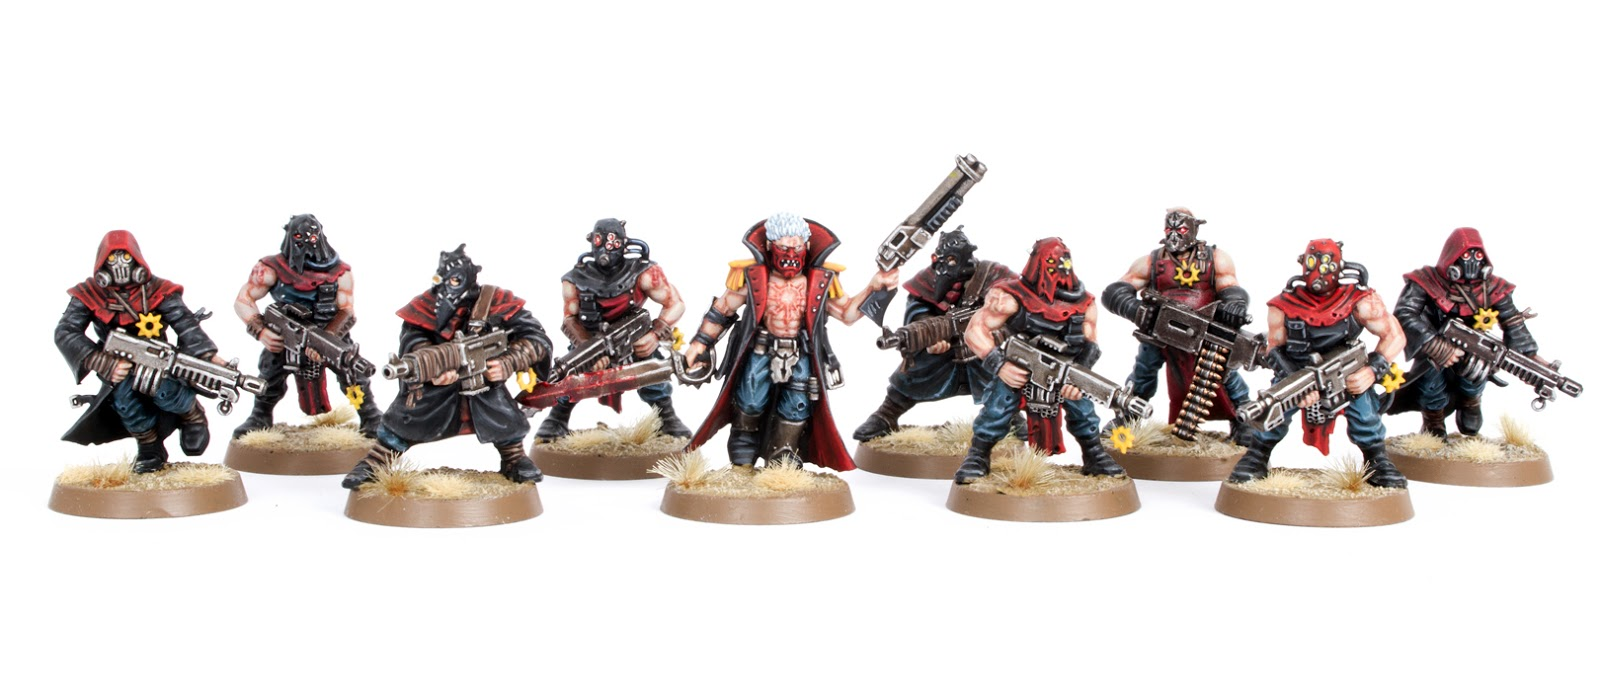 Showcase: Chaos Space Marine Cultists - Tale of Painters